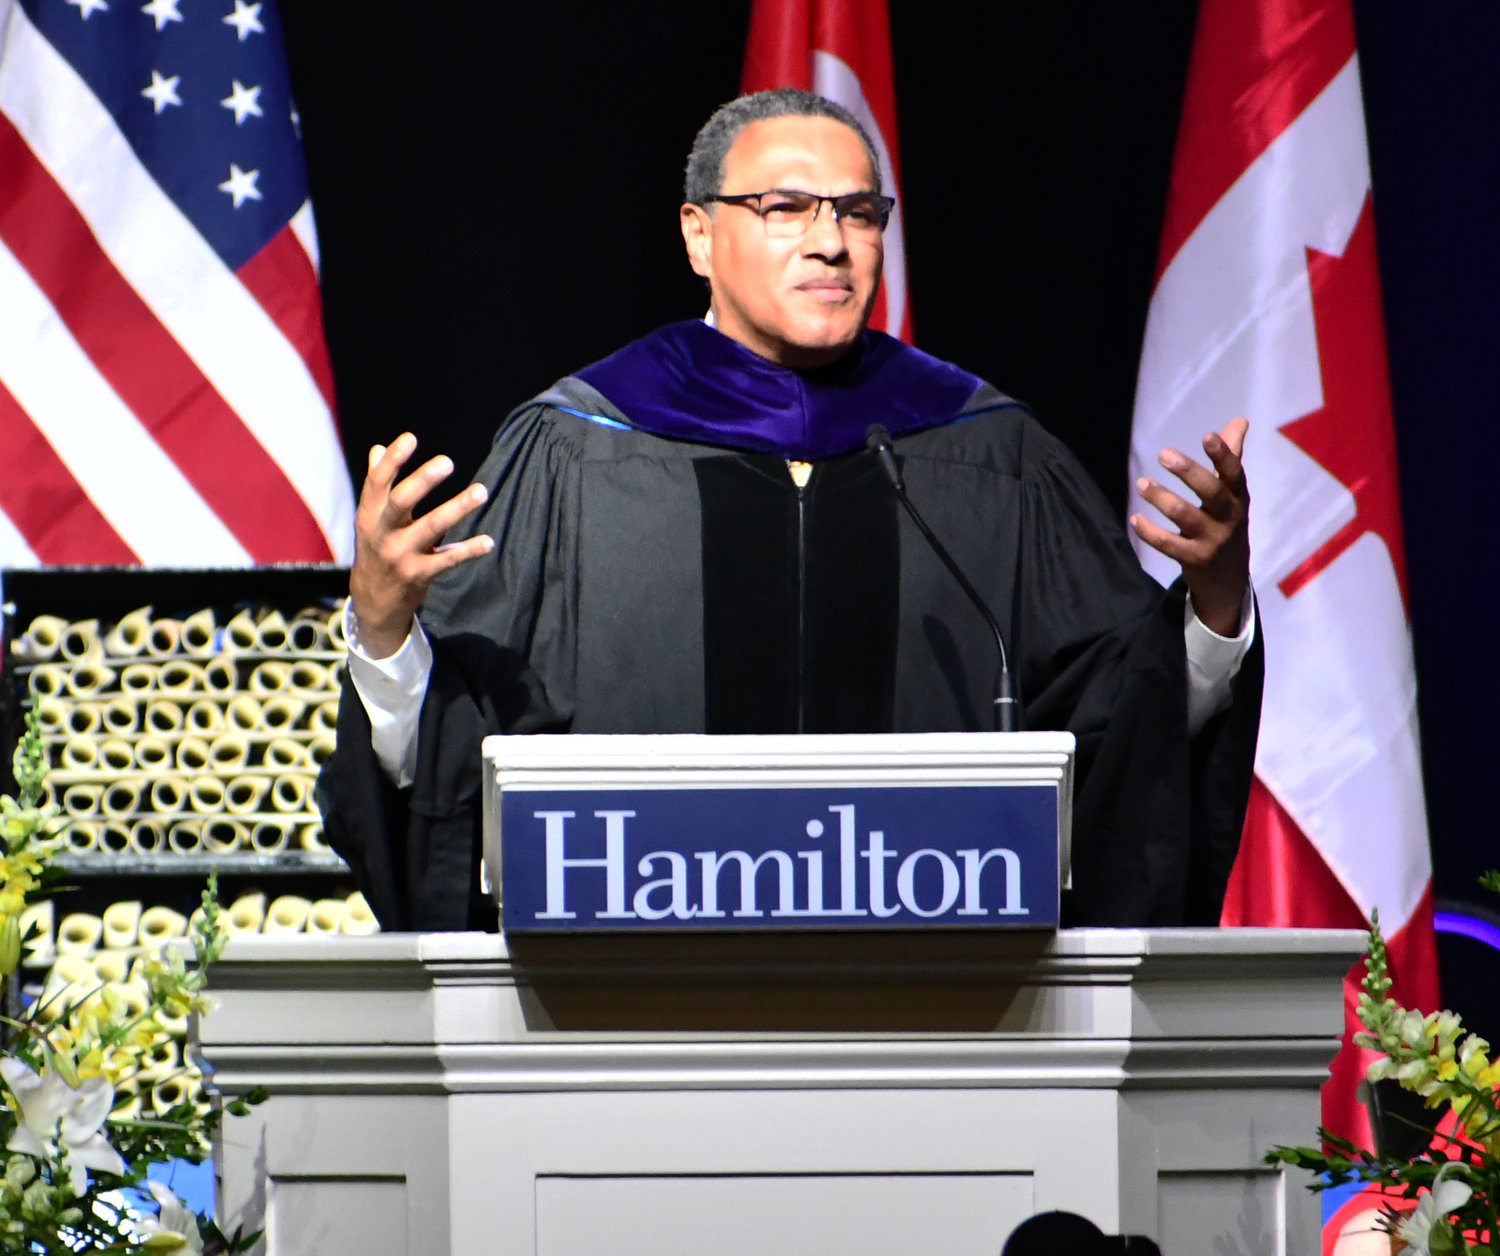 GUEST SPEAKER — Educator, advocate and mathematician, Freeman A. Hrabowski III gave an inspirational speech at Hamilton College that included thanking the parents of the Class of 2019 for a job very well done on Sunday, May 26 at the Margaret Bundy Scott Field House during the annual commencement ceremony.